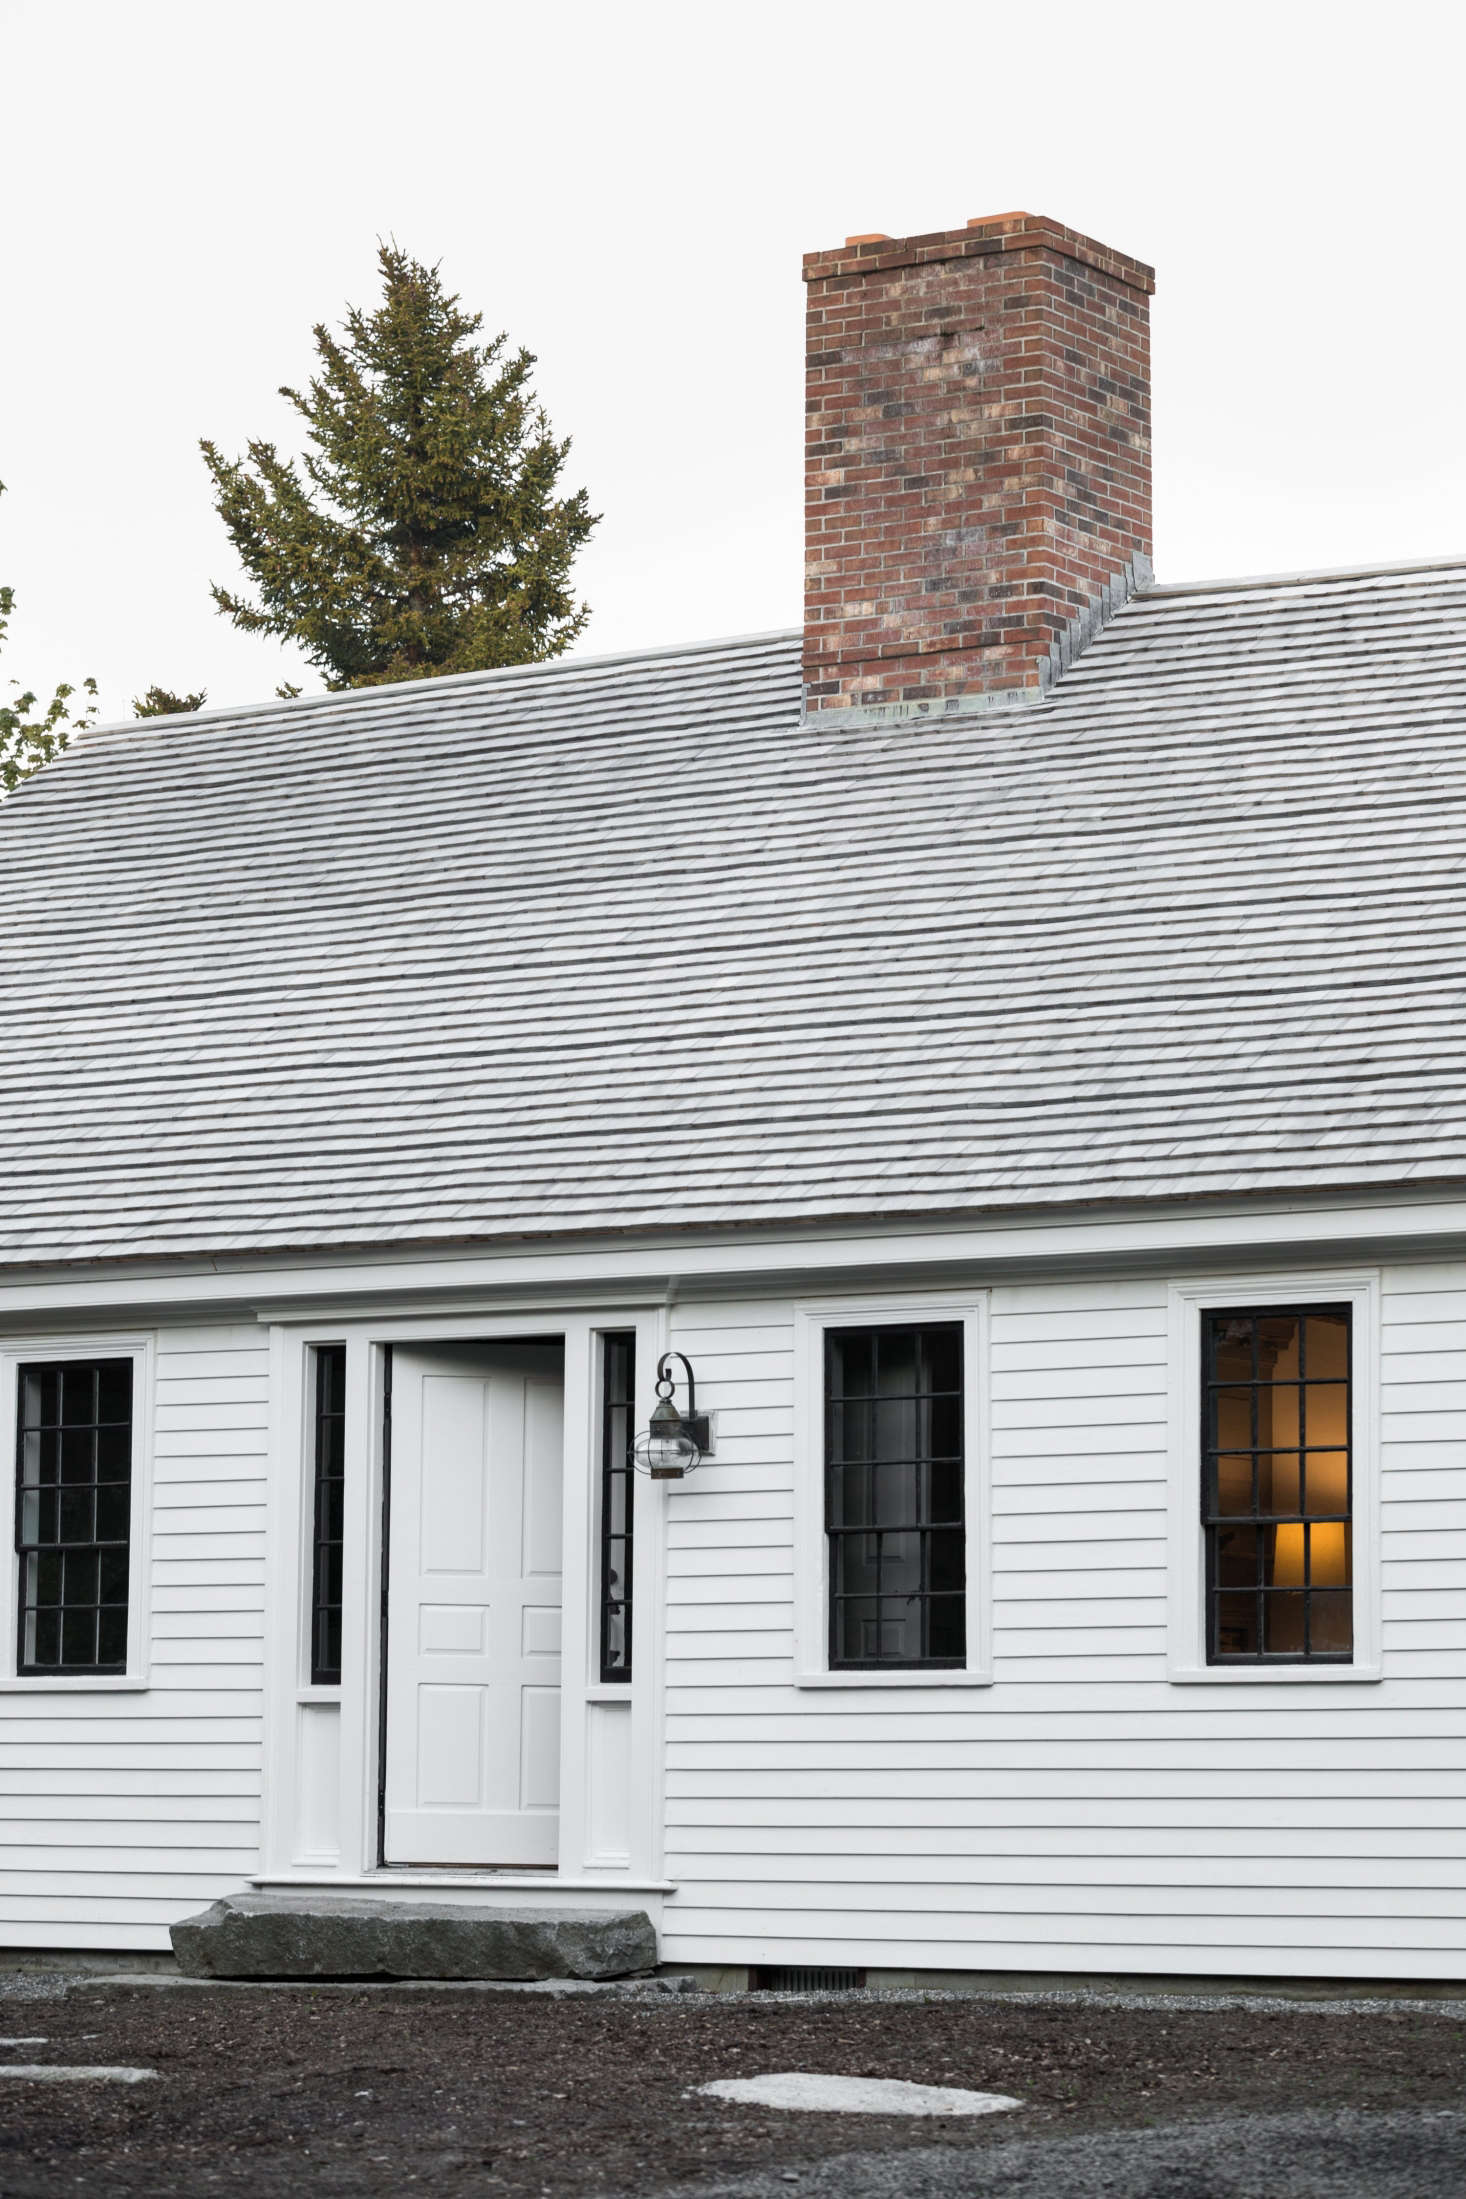 The exterior of the Cape is painted in an oyster-white milk paint. (For something similar, considerOyster White by Old Fashioned Milk Paint.)